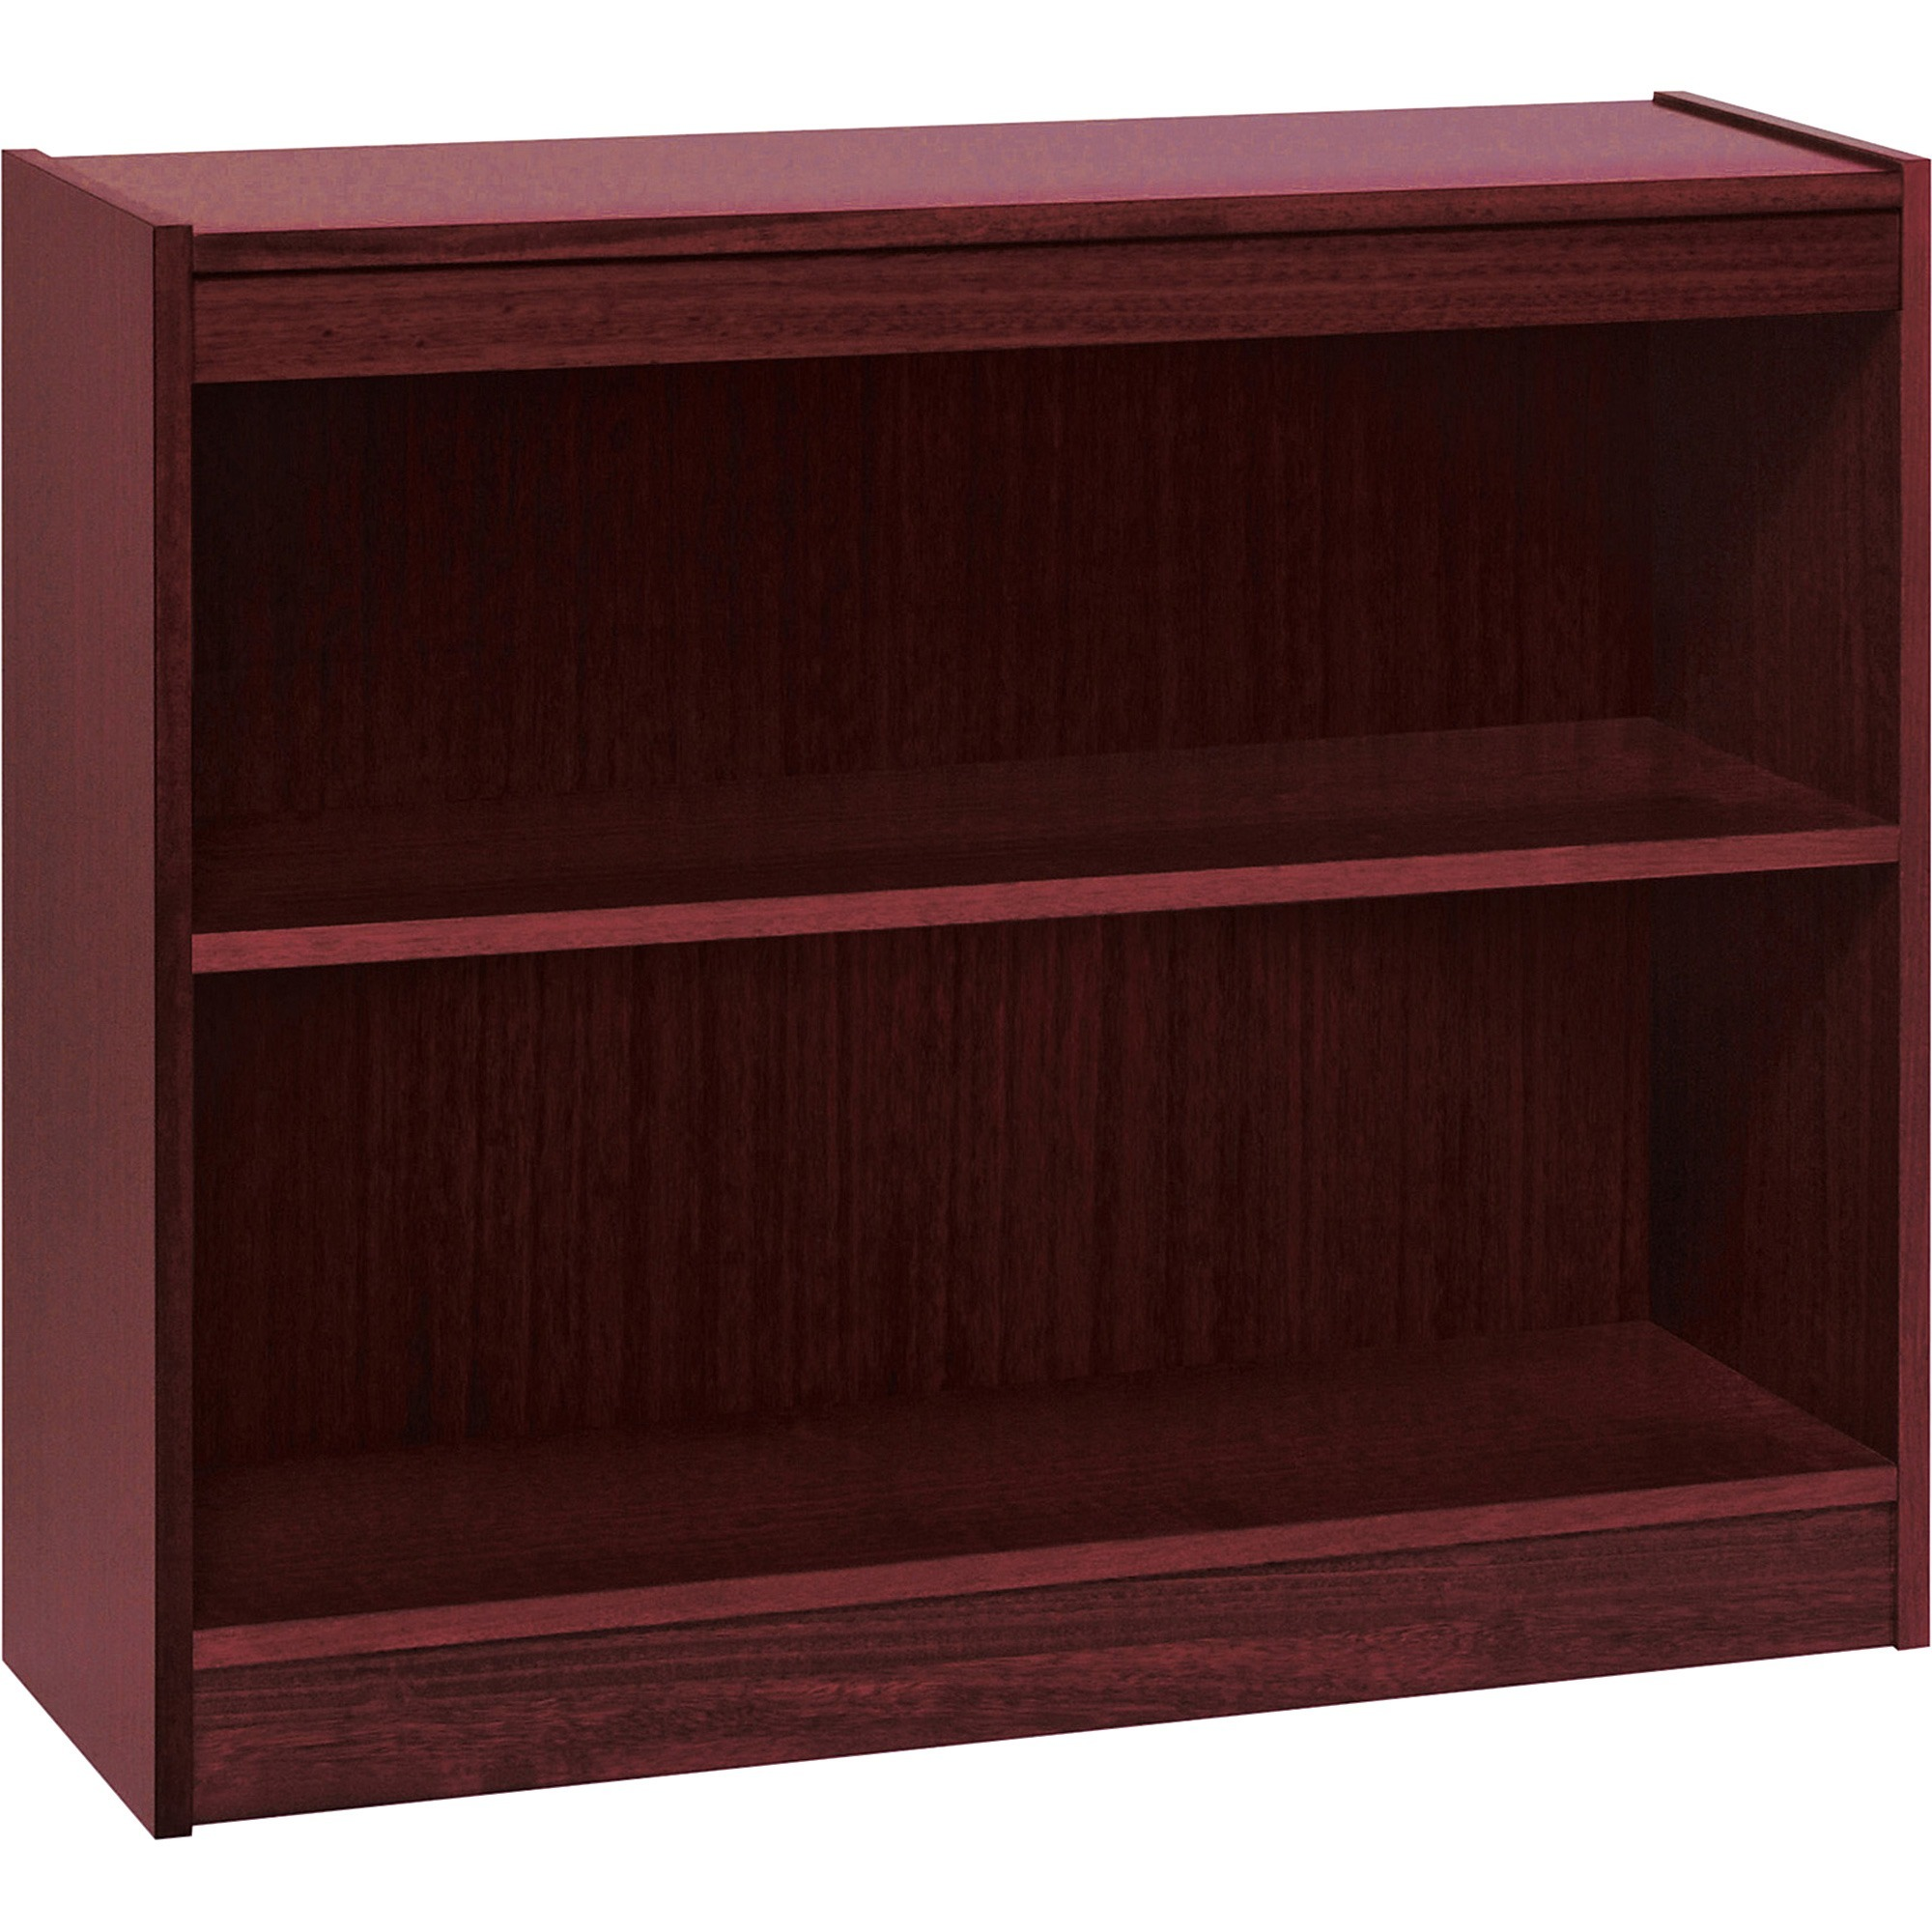 Lorell, LLR60070, Panel End Hardwood Veneer Bookcase, 1 Each, Mahogany